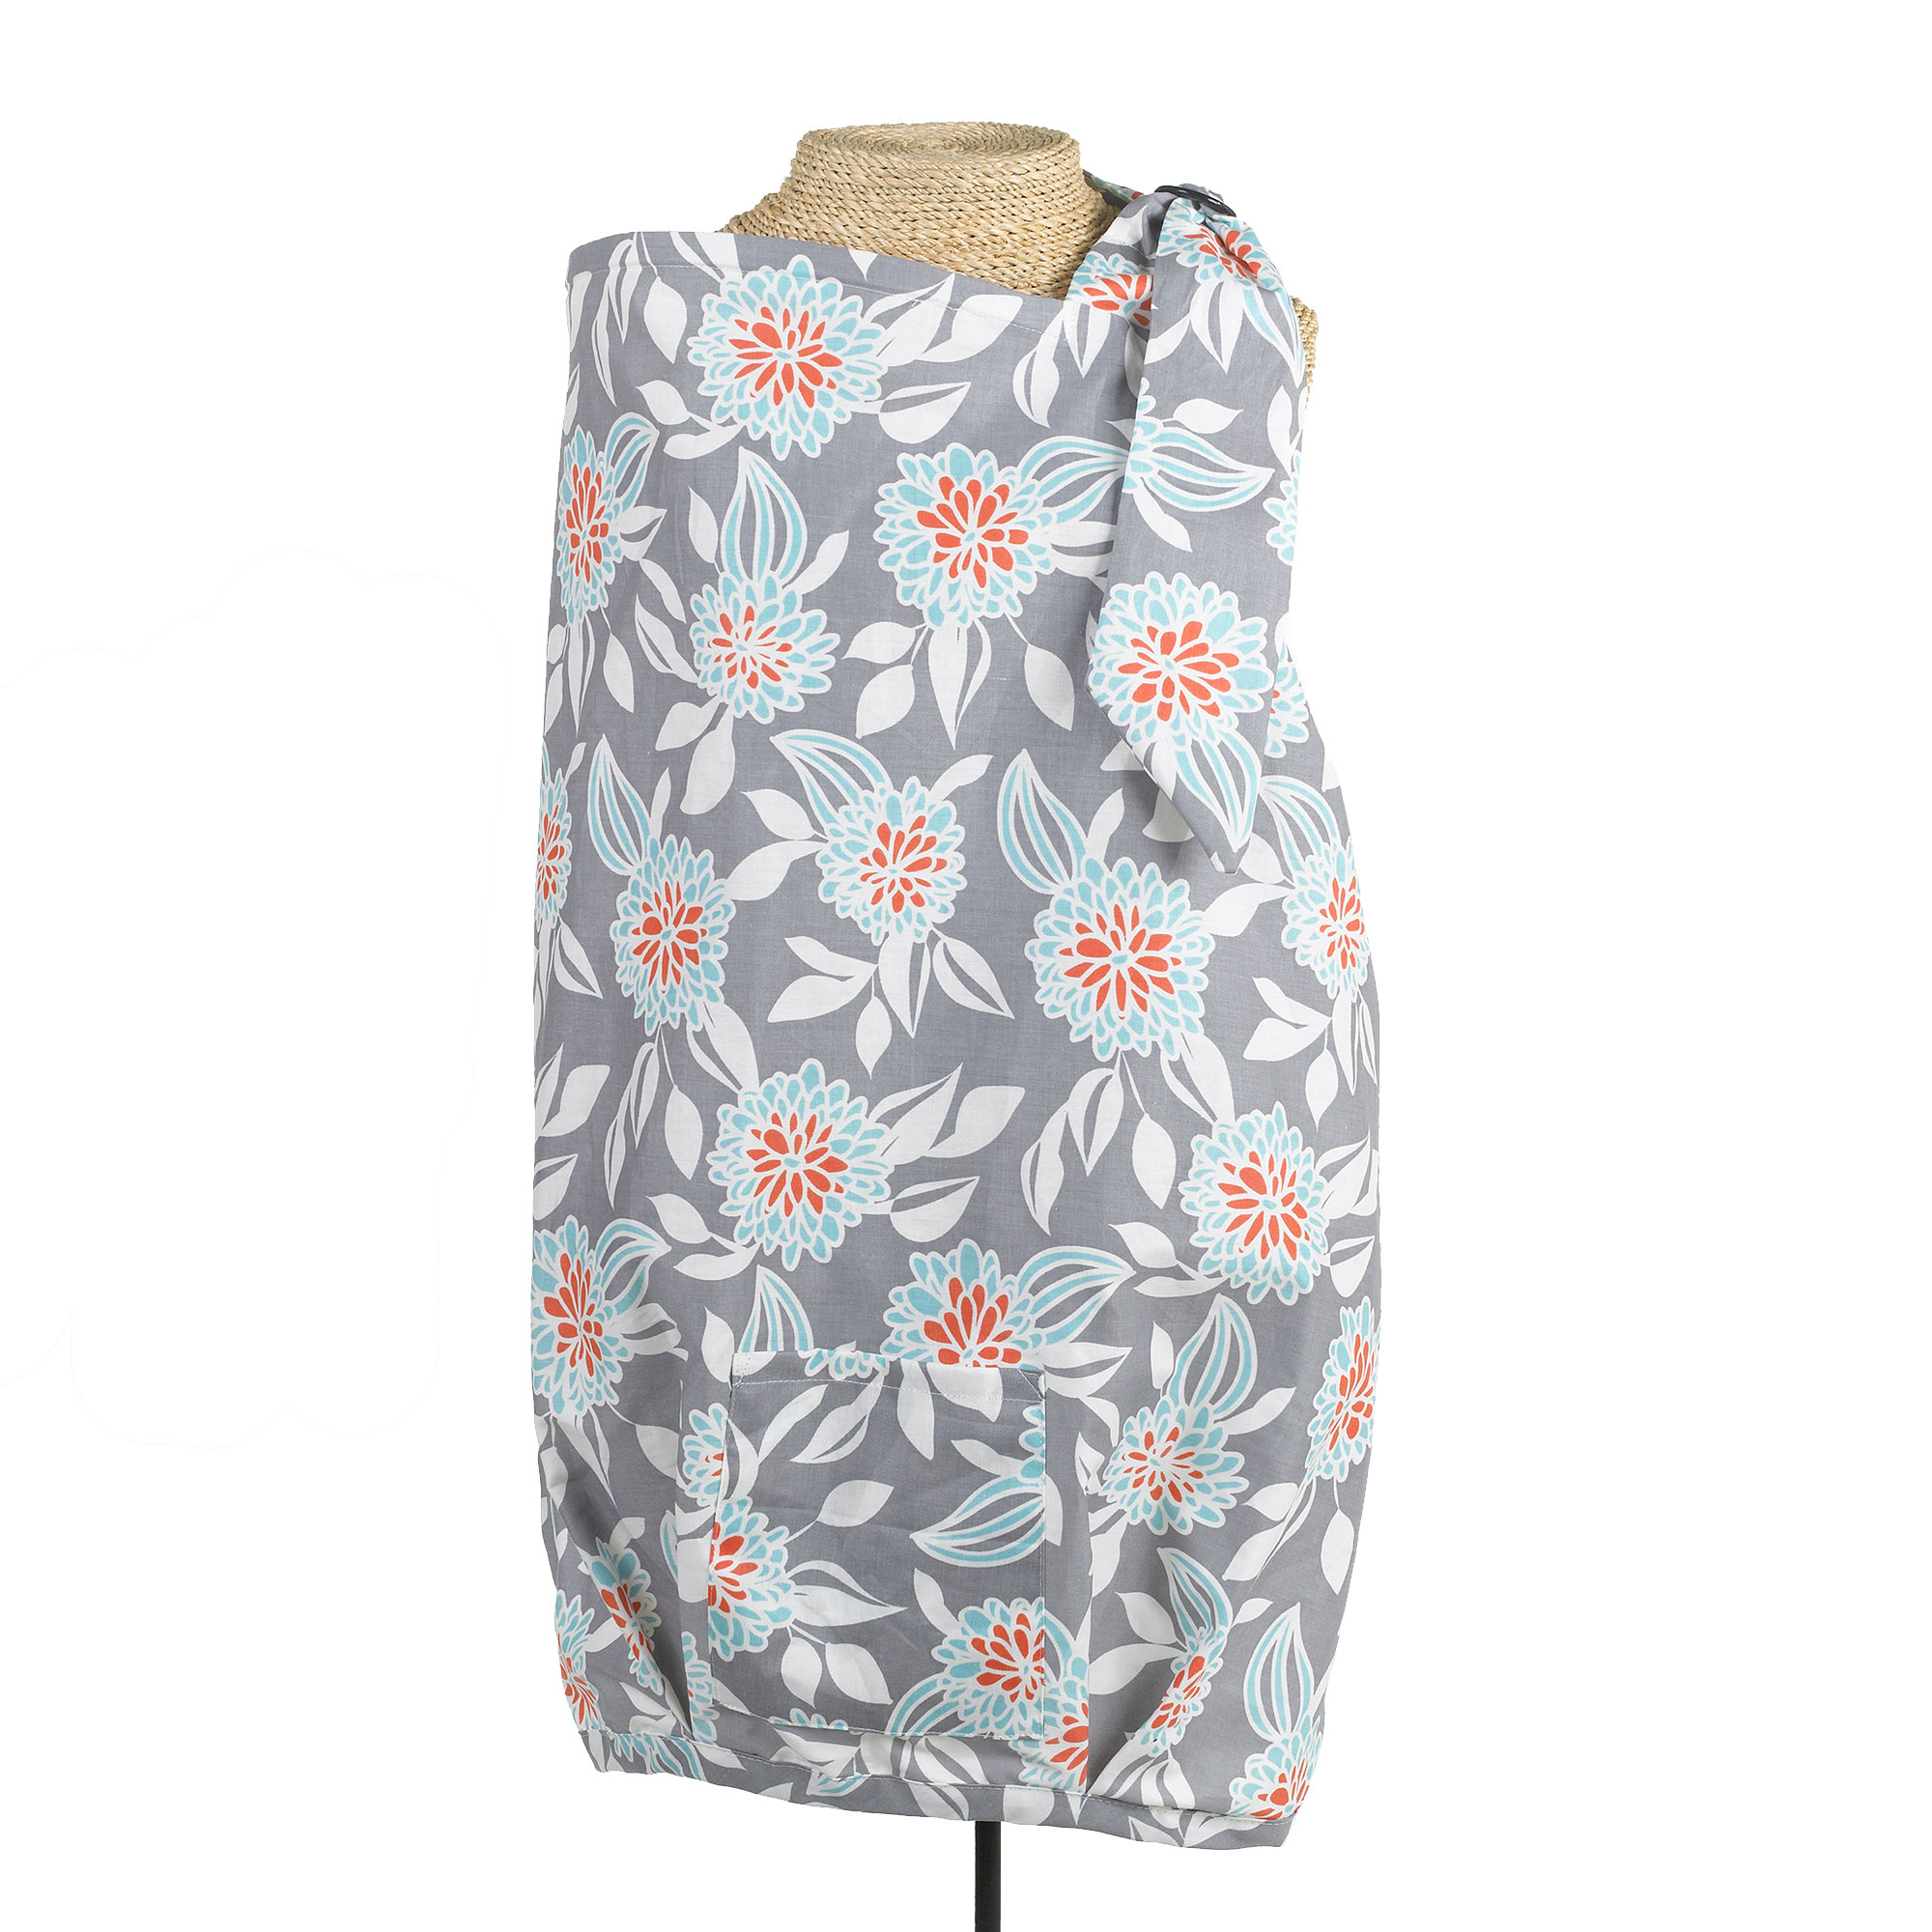 Balboa Baby Nursing Cover 100% Cotton - Grey Dahlia Floral Contoured Design - Dr. Sears Recommended